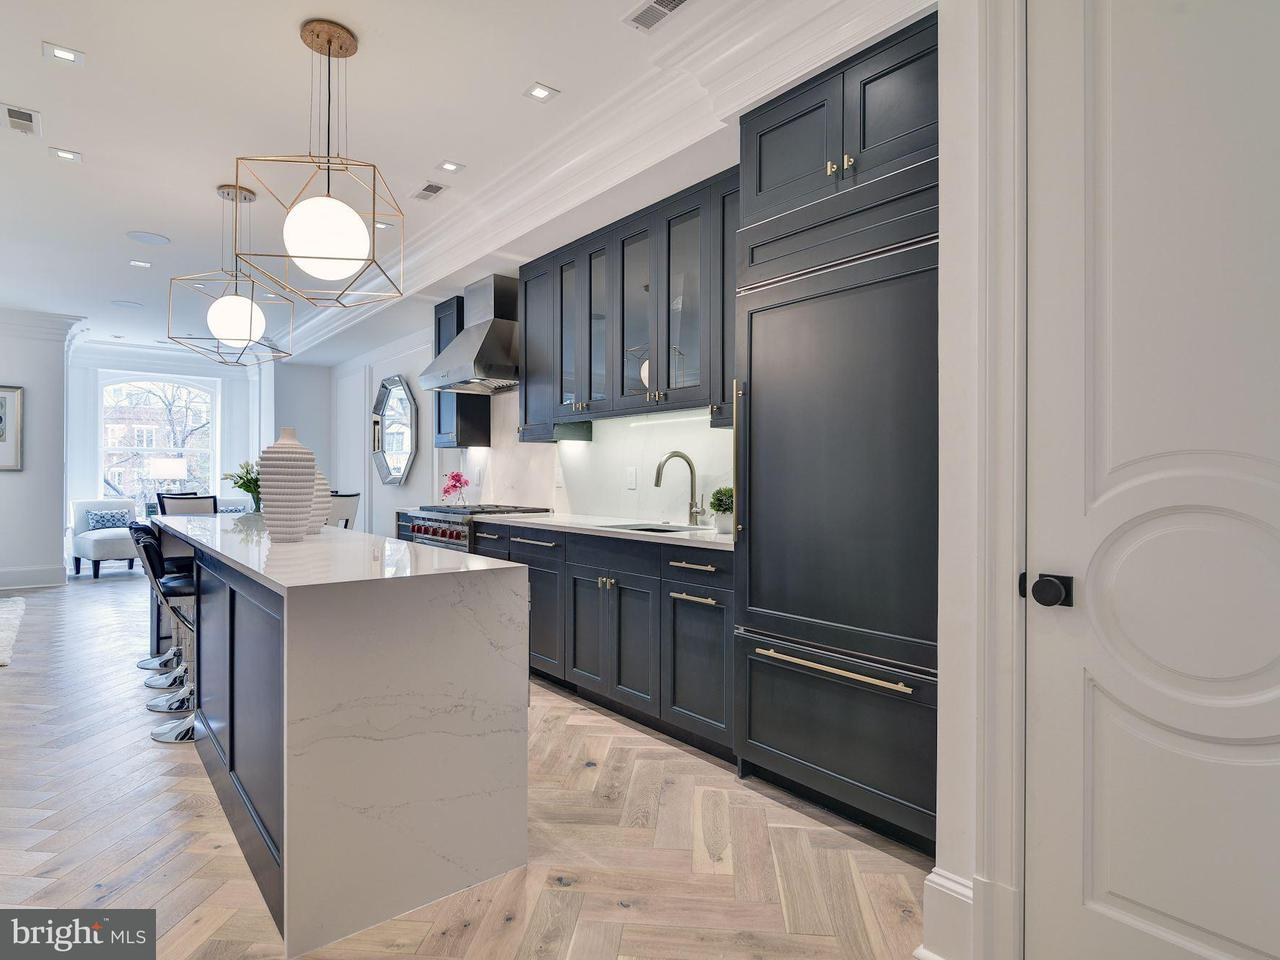 Townhouse for Sale at 1832 16th St Nw #3 1832 16th St Nw #3 Washington, District Of Columbia 20009 United States